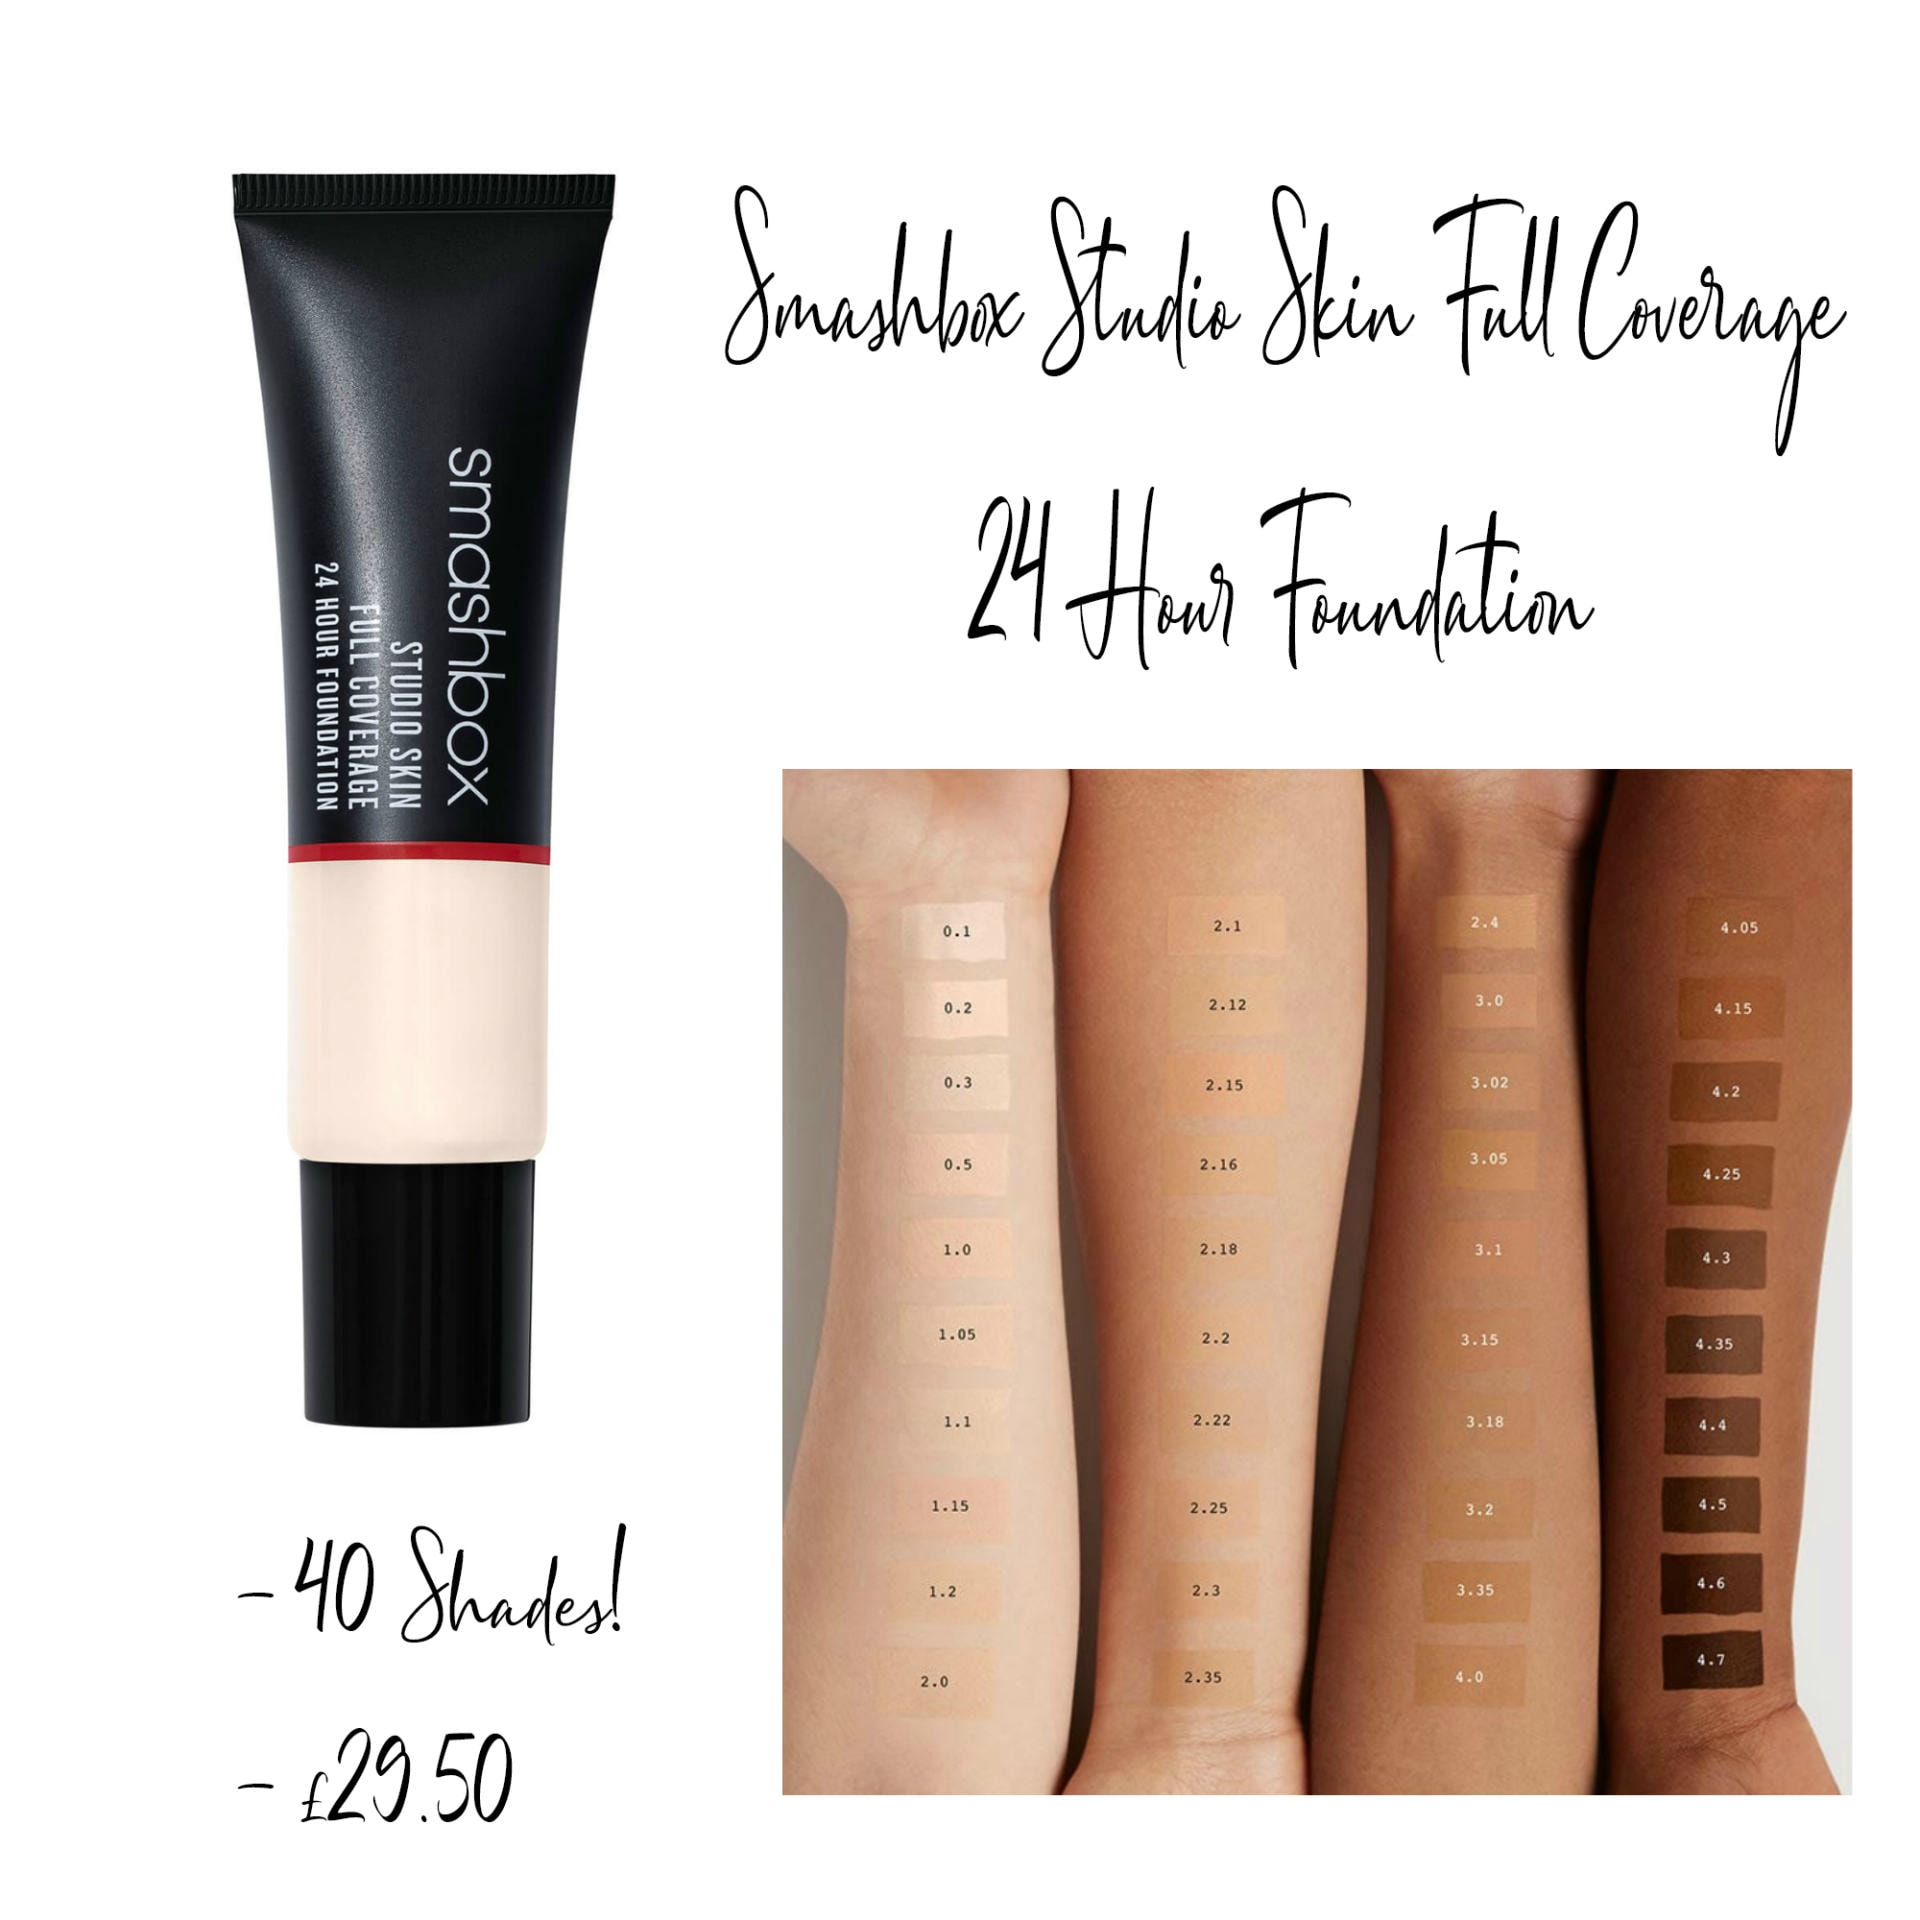 Smashbox Studio Skin Full Coverage 24 Hour Foundation